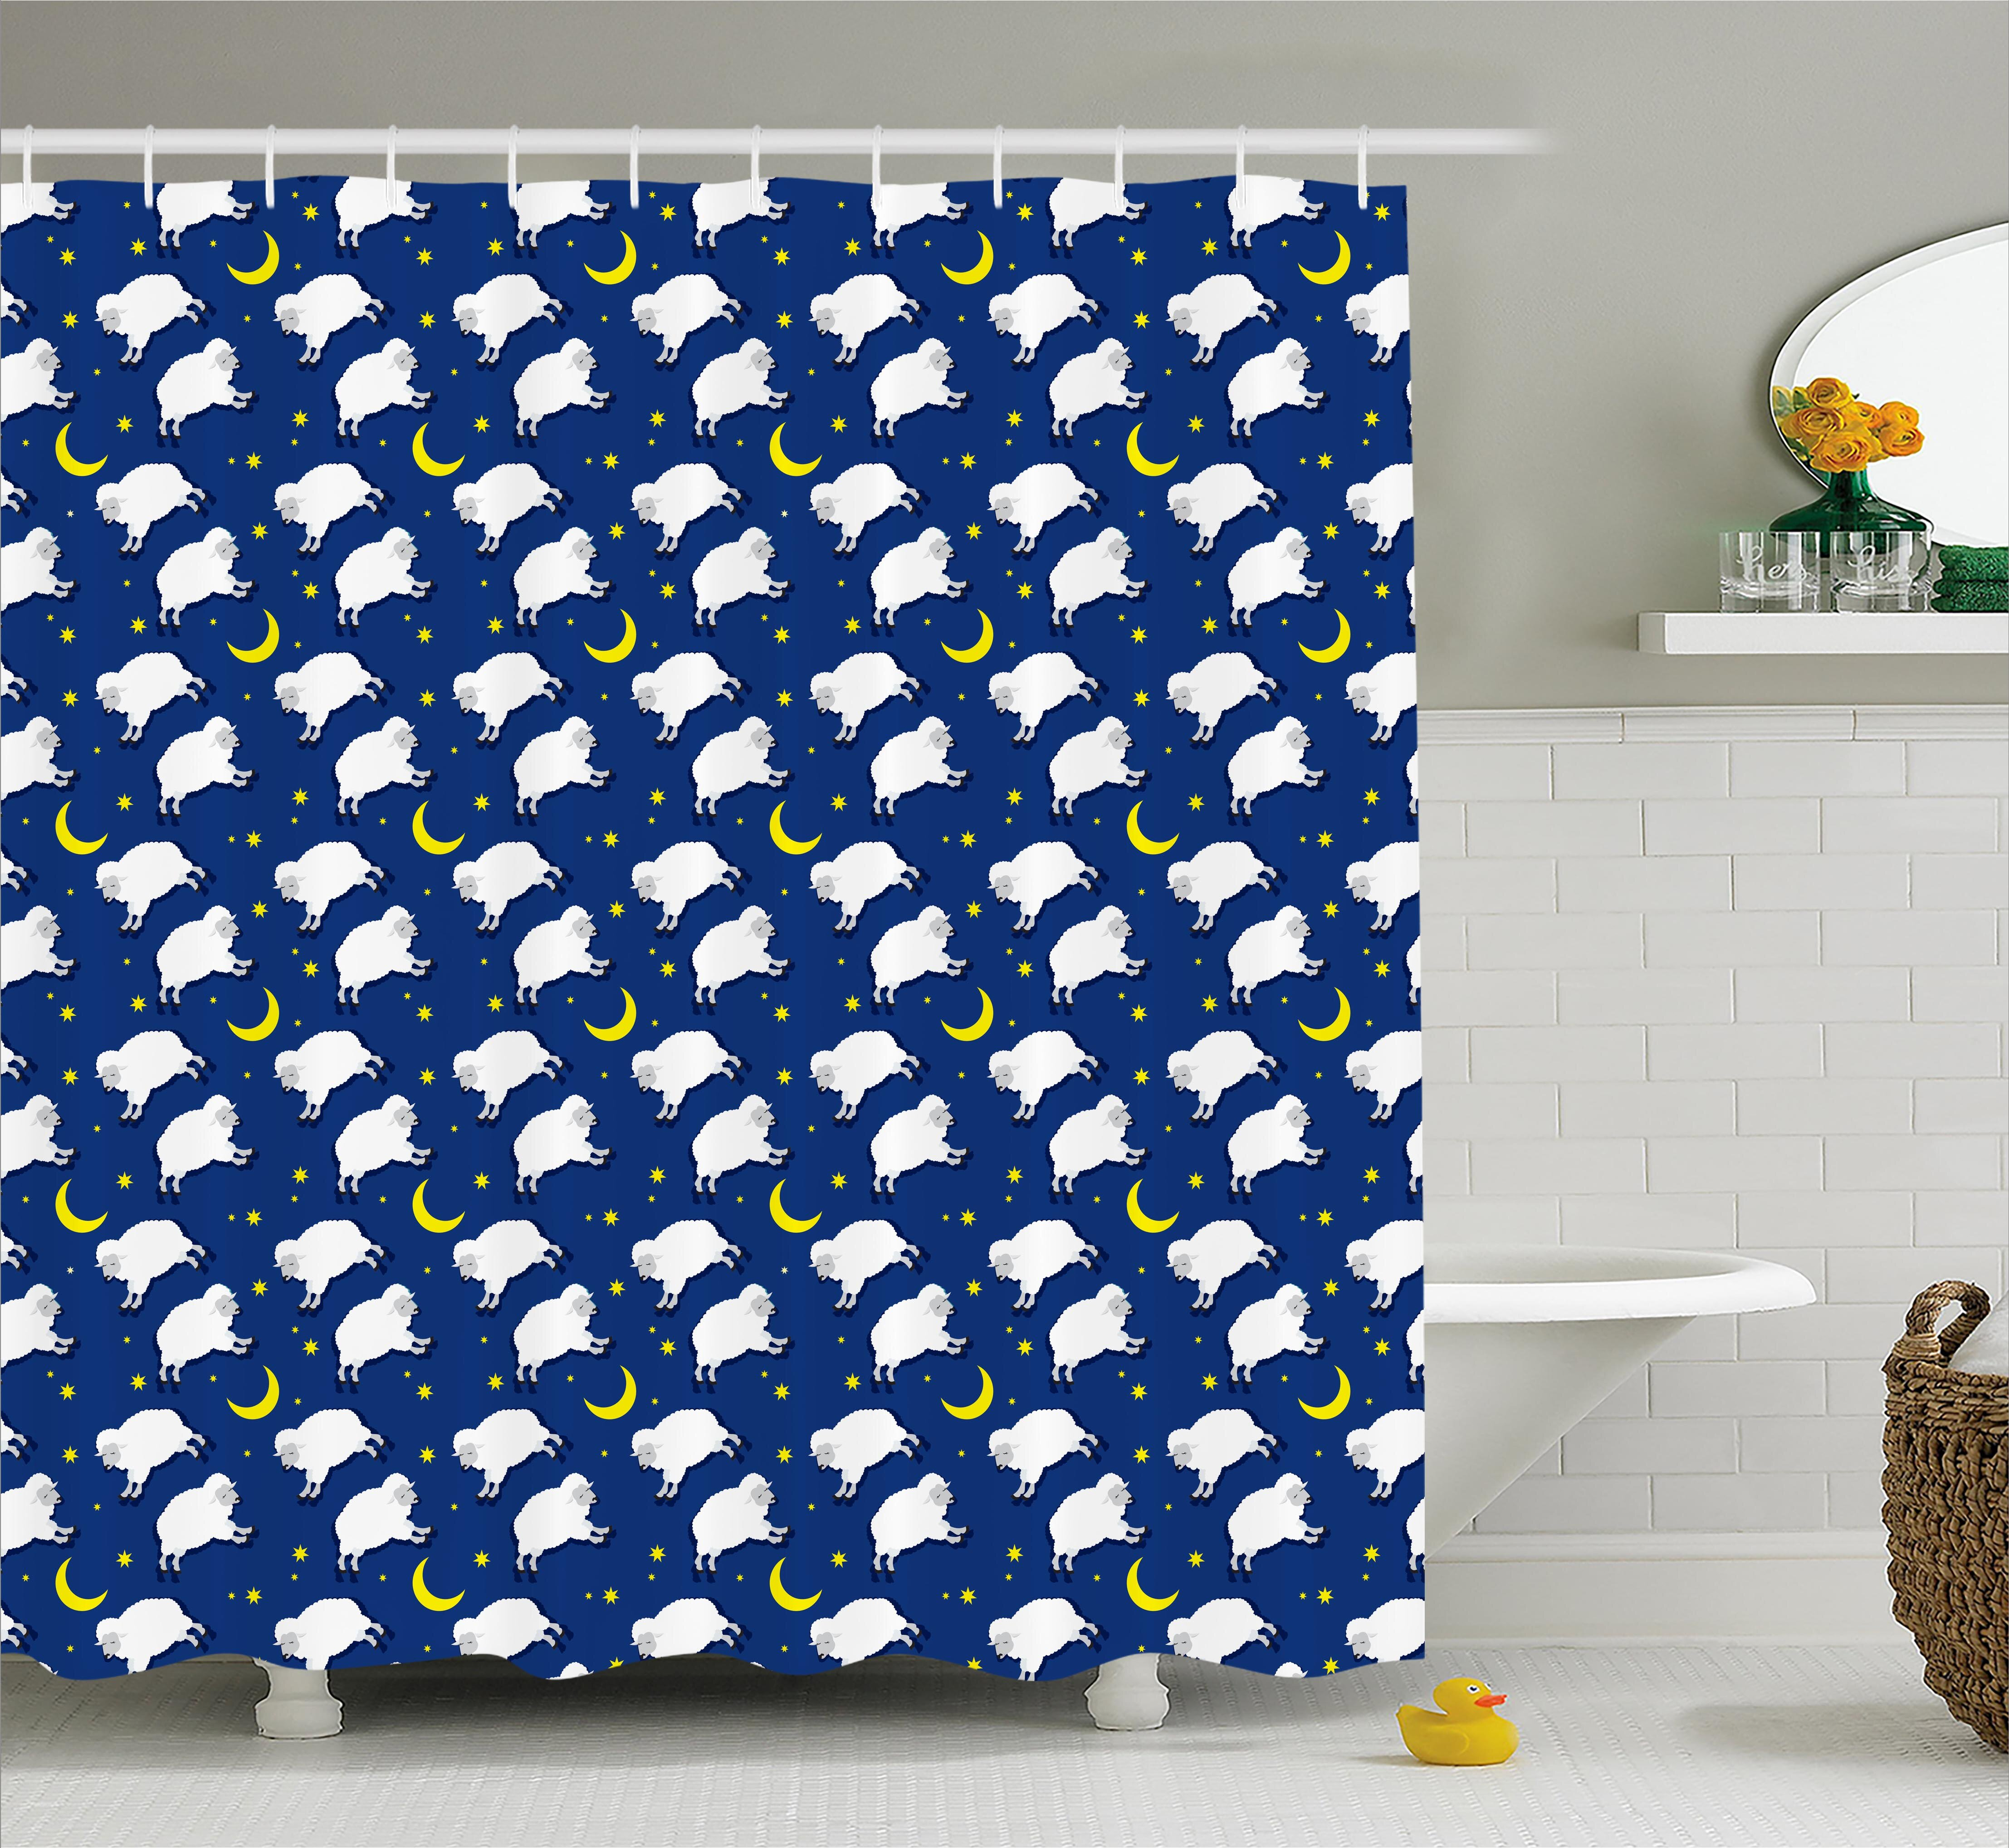 Zoomie Kids Luella Crescent Moon And Stars Shower Curtain